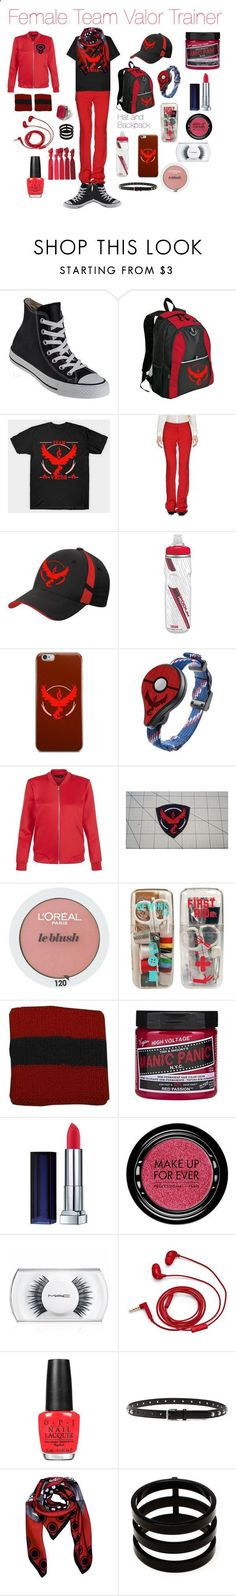 Female Team Valor Trainer by emmasart ❤ liked on Polyvore featuring Converse, Valor, ESCADA, CamelBak, New Look, LOréal Paris, Maybelline, MAKE UP FOR EVER, MAC Cosmetics and FOSSIL